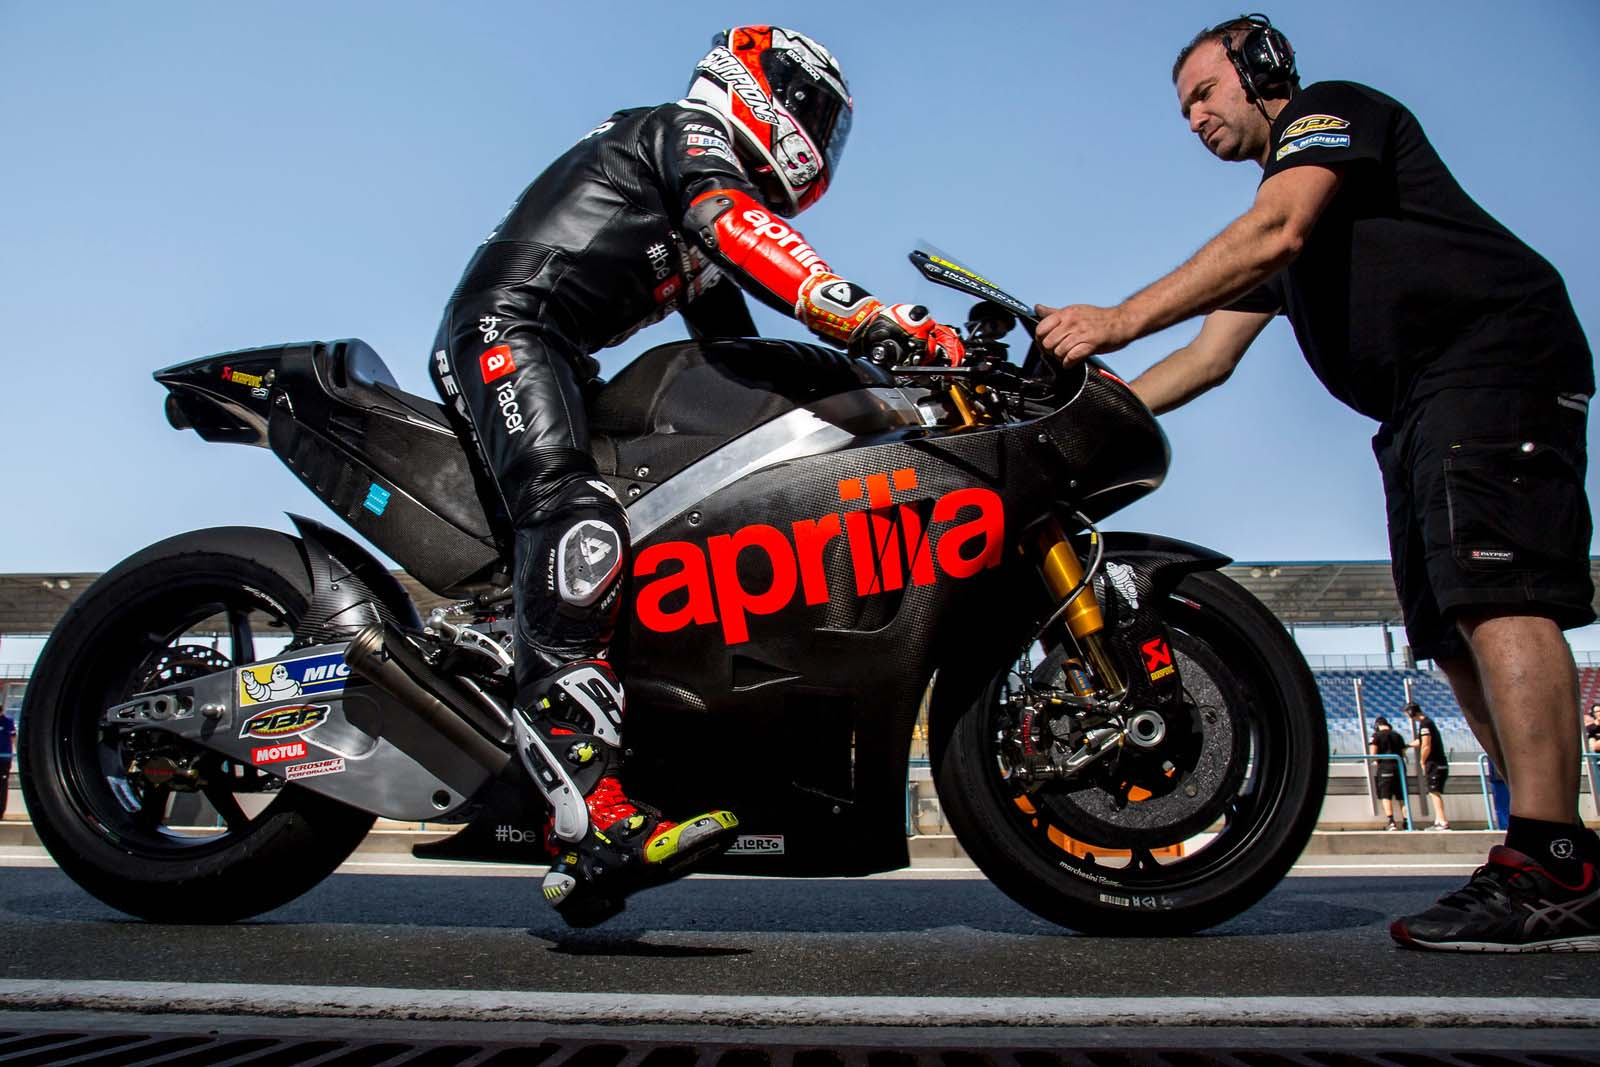 2016 Aprilia RS-GP MotoGP Bike Officially Breaks Cover